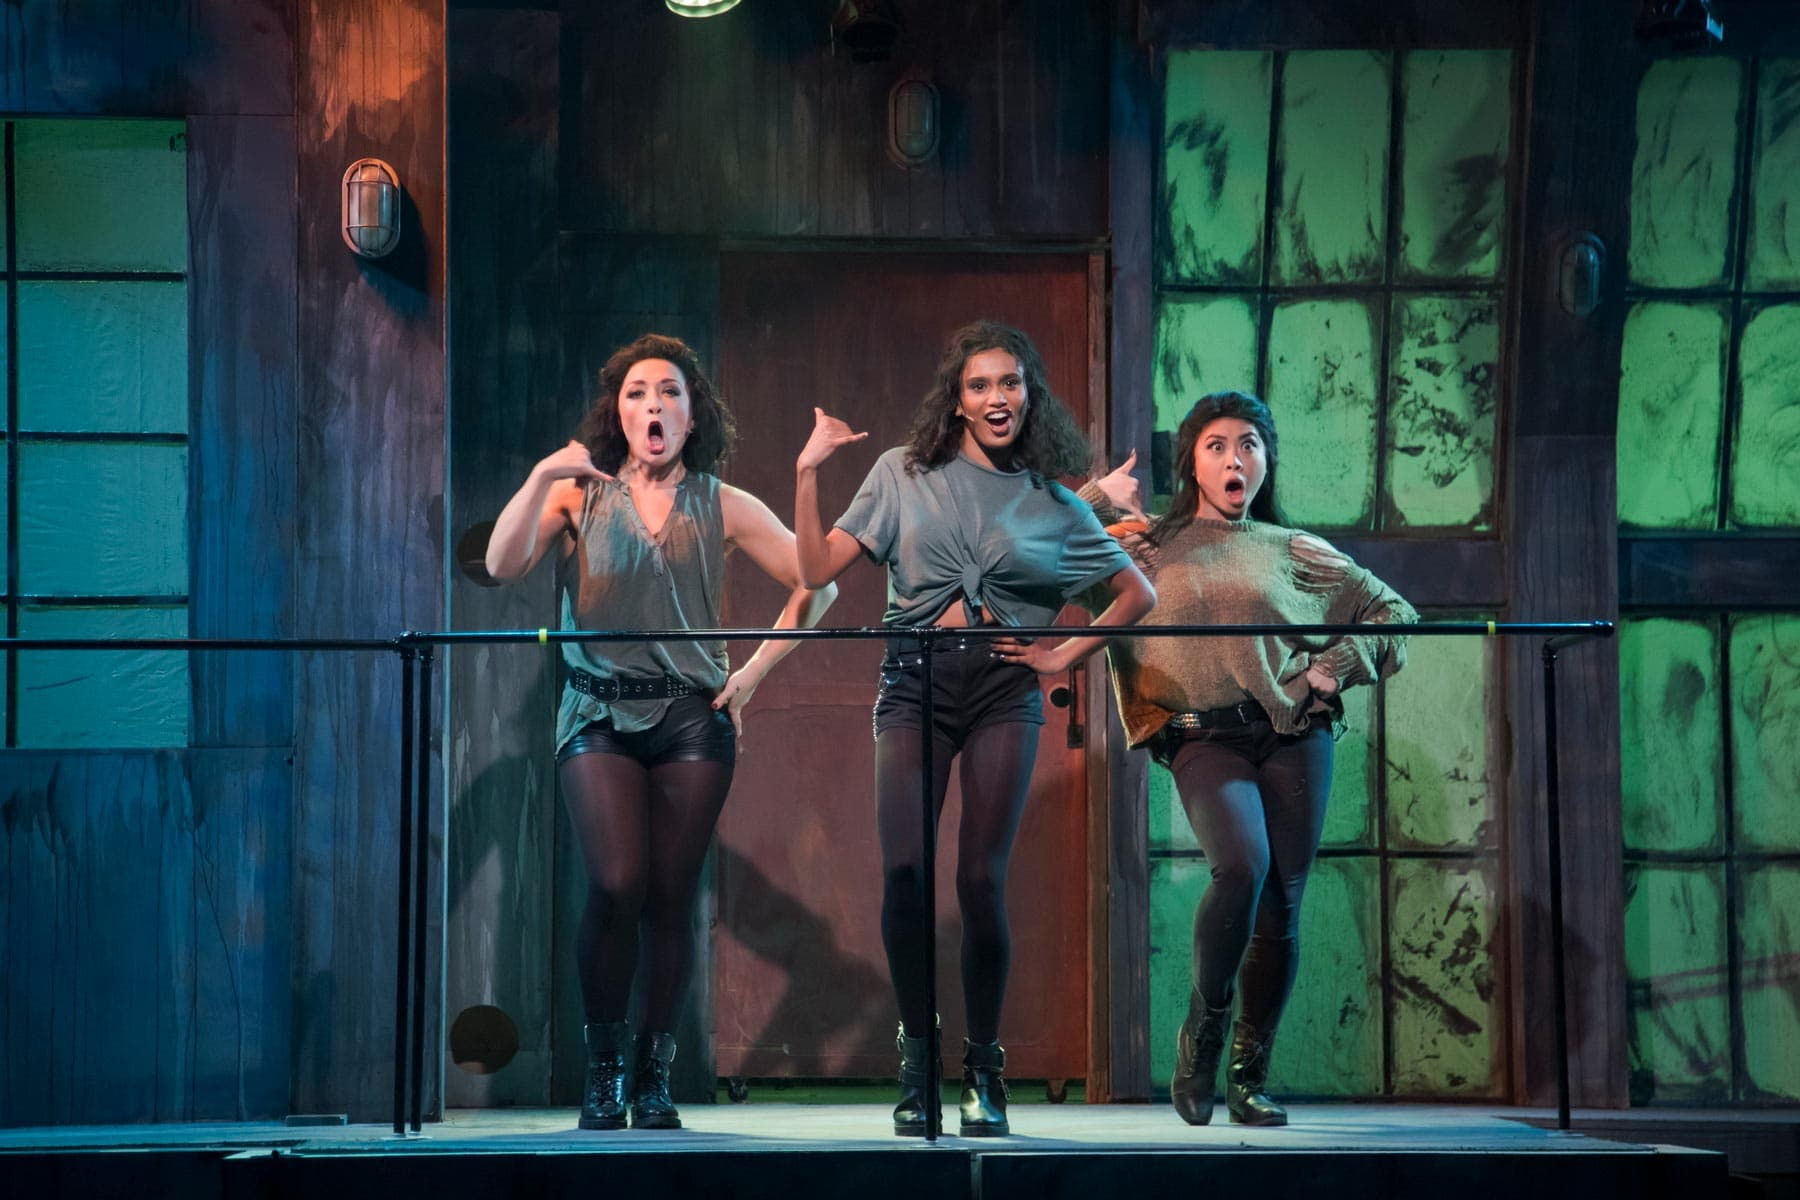 Ronnette (Melinda Campero, Left), Chiffon (Becky Alex, Center), and Crystal (Kylie Abucay, right) kick off the show with Little Shop of Horrors!